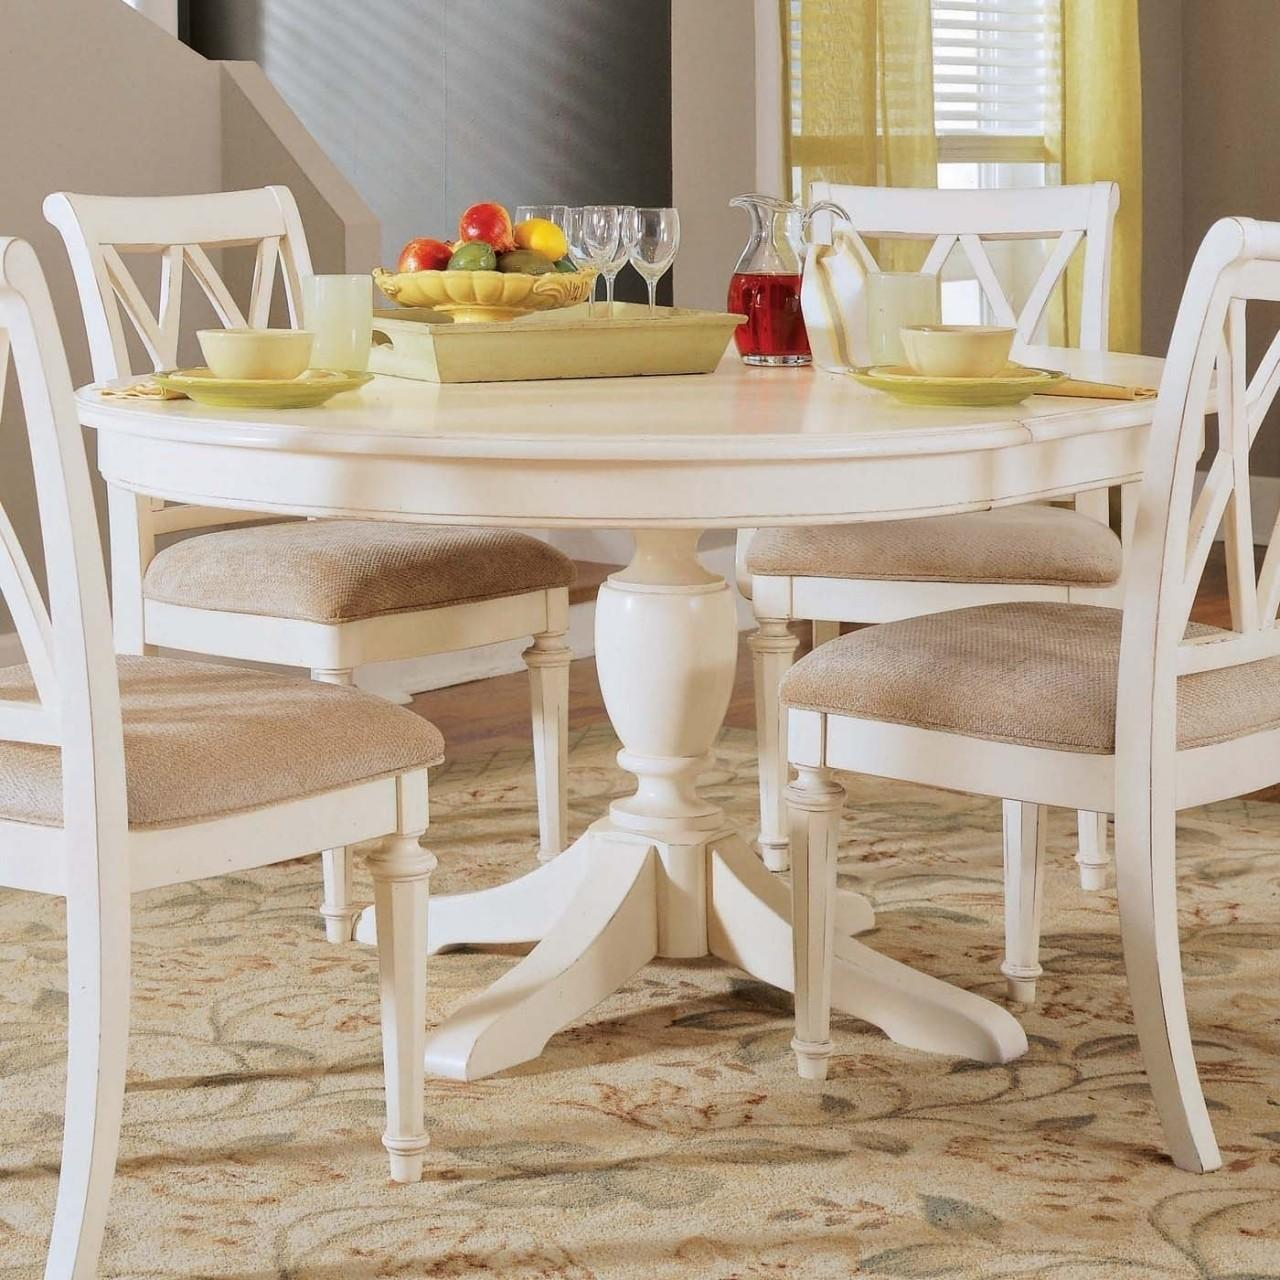 Dining Room Furniture Diy Large Fold